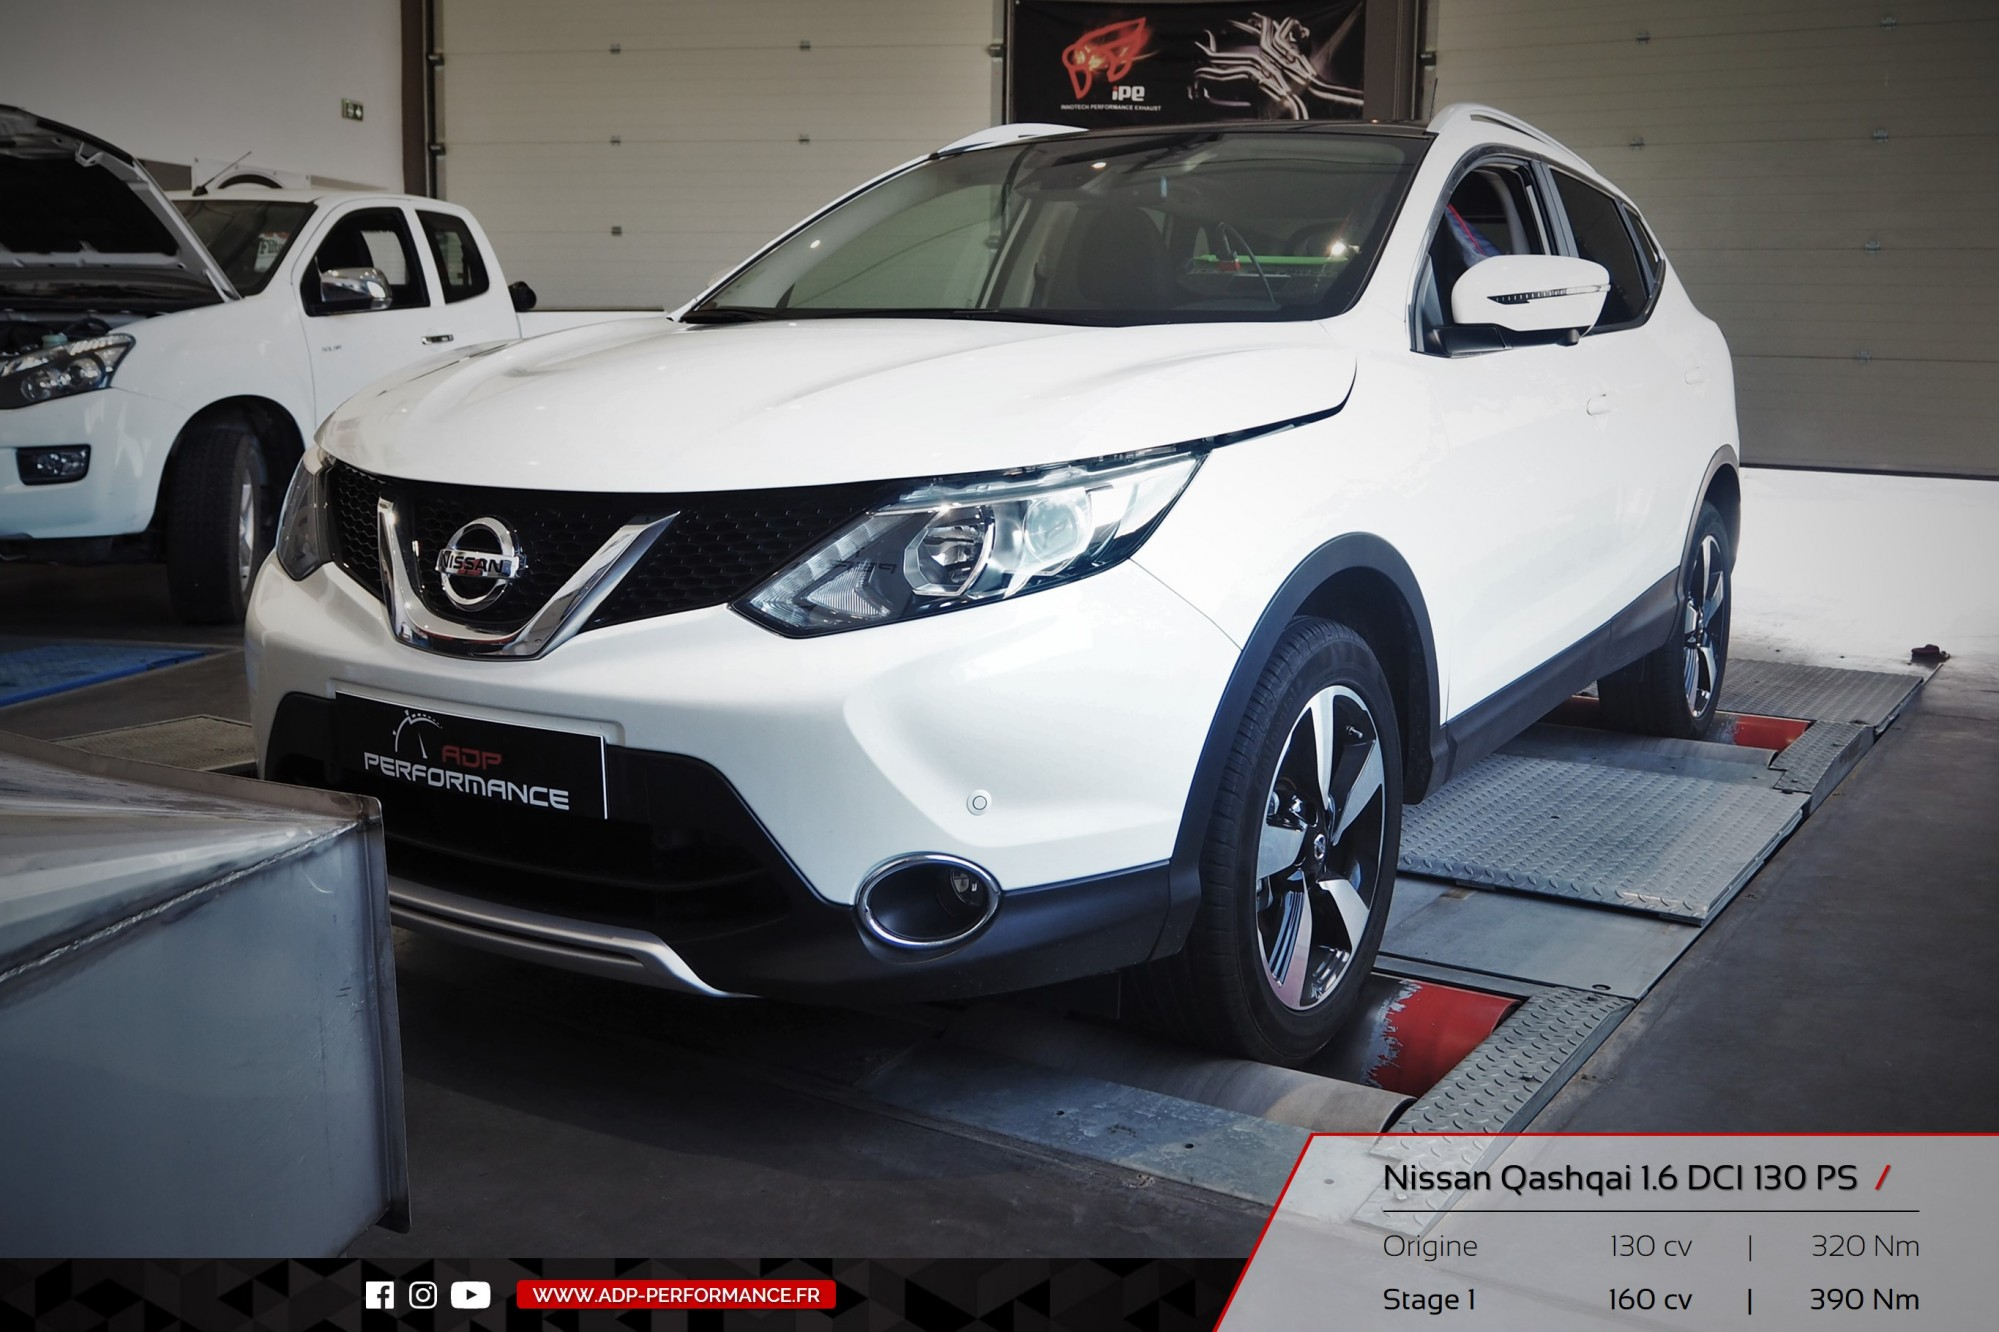 nissan qashqai 02 2014 diesel 1 6 dci 130 cv reprogrammation de votre vehicule. Black Bedroom Furniture Sets. Home Design Ideas